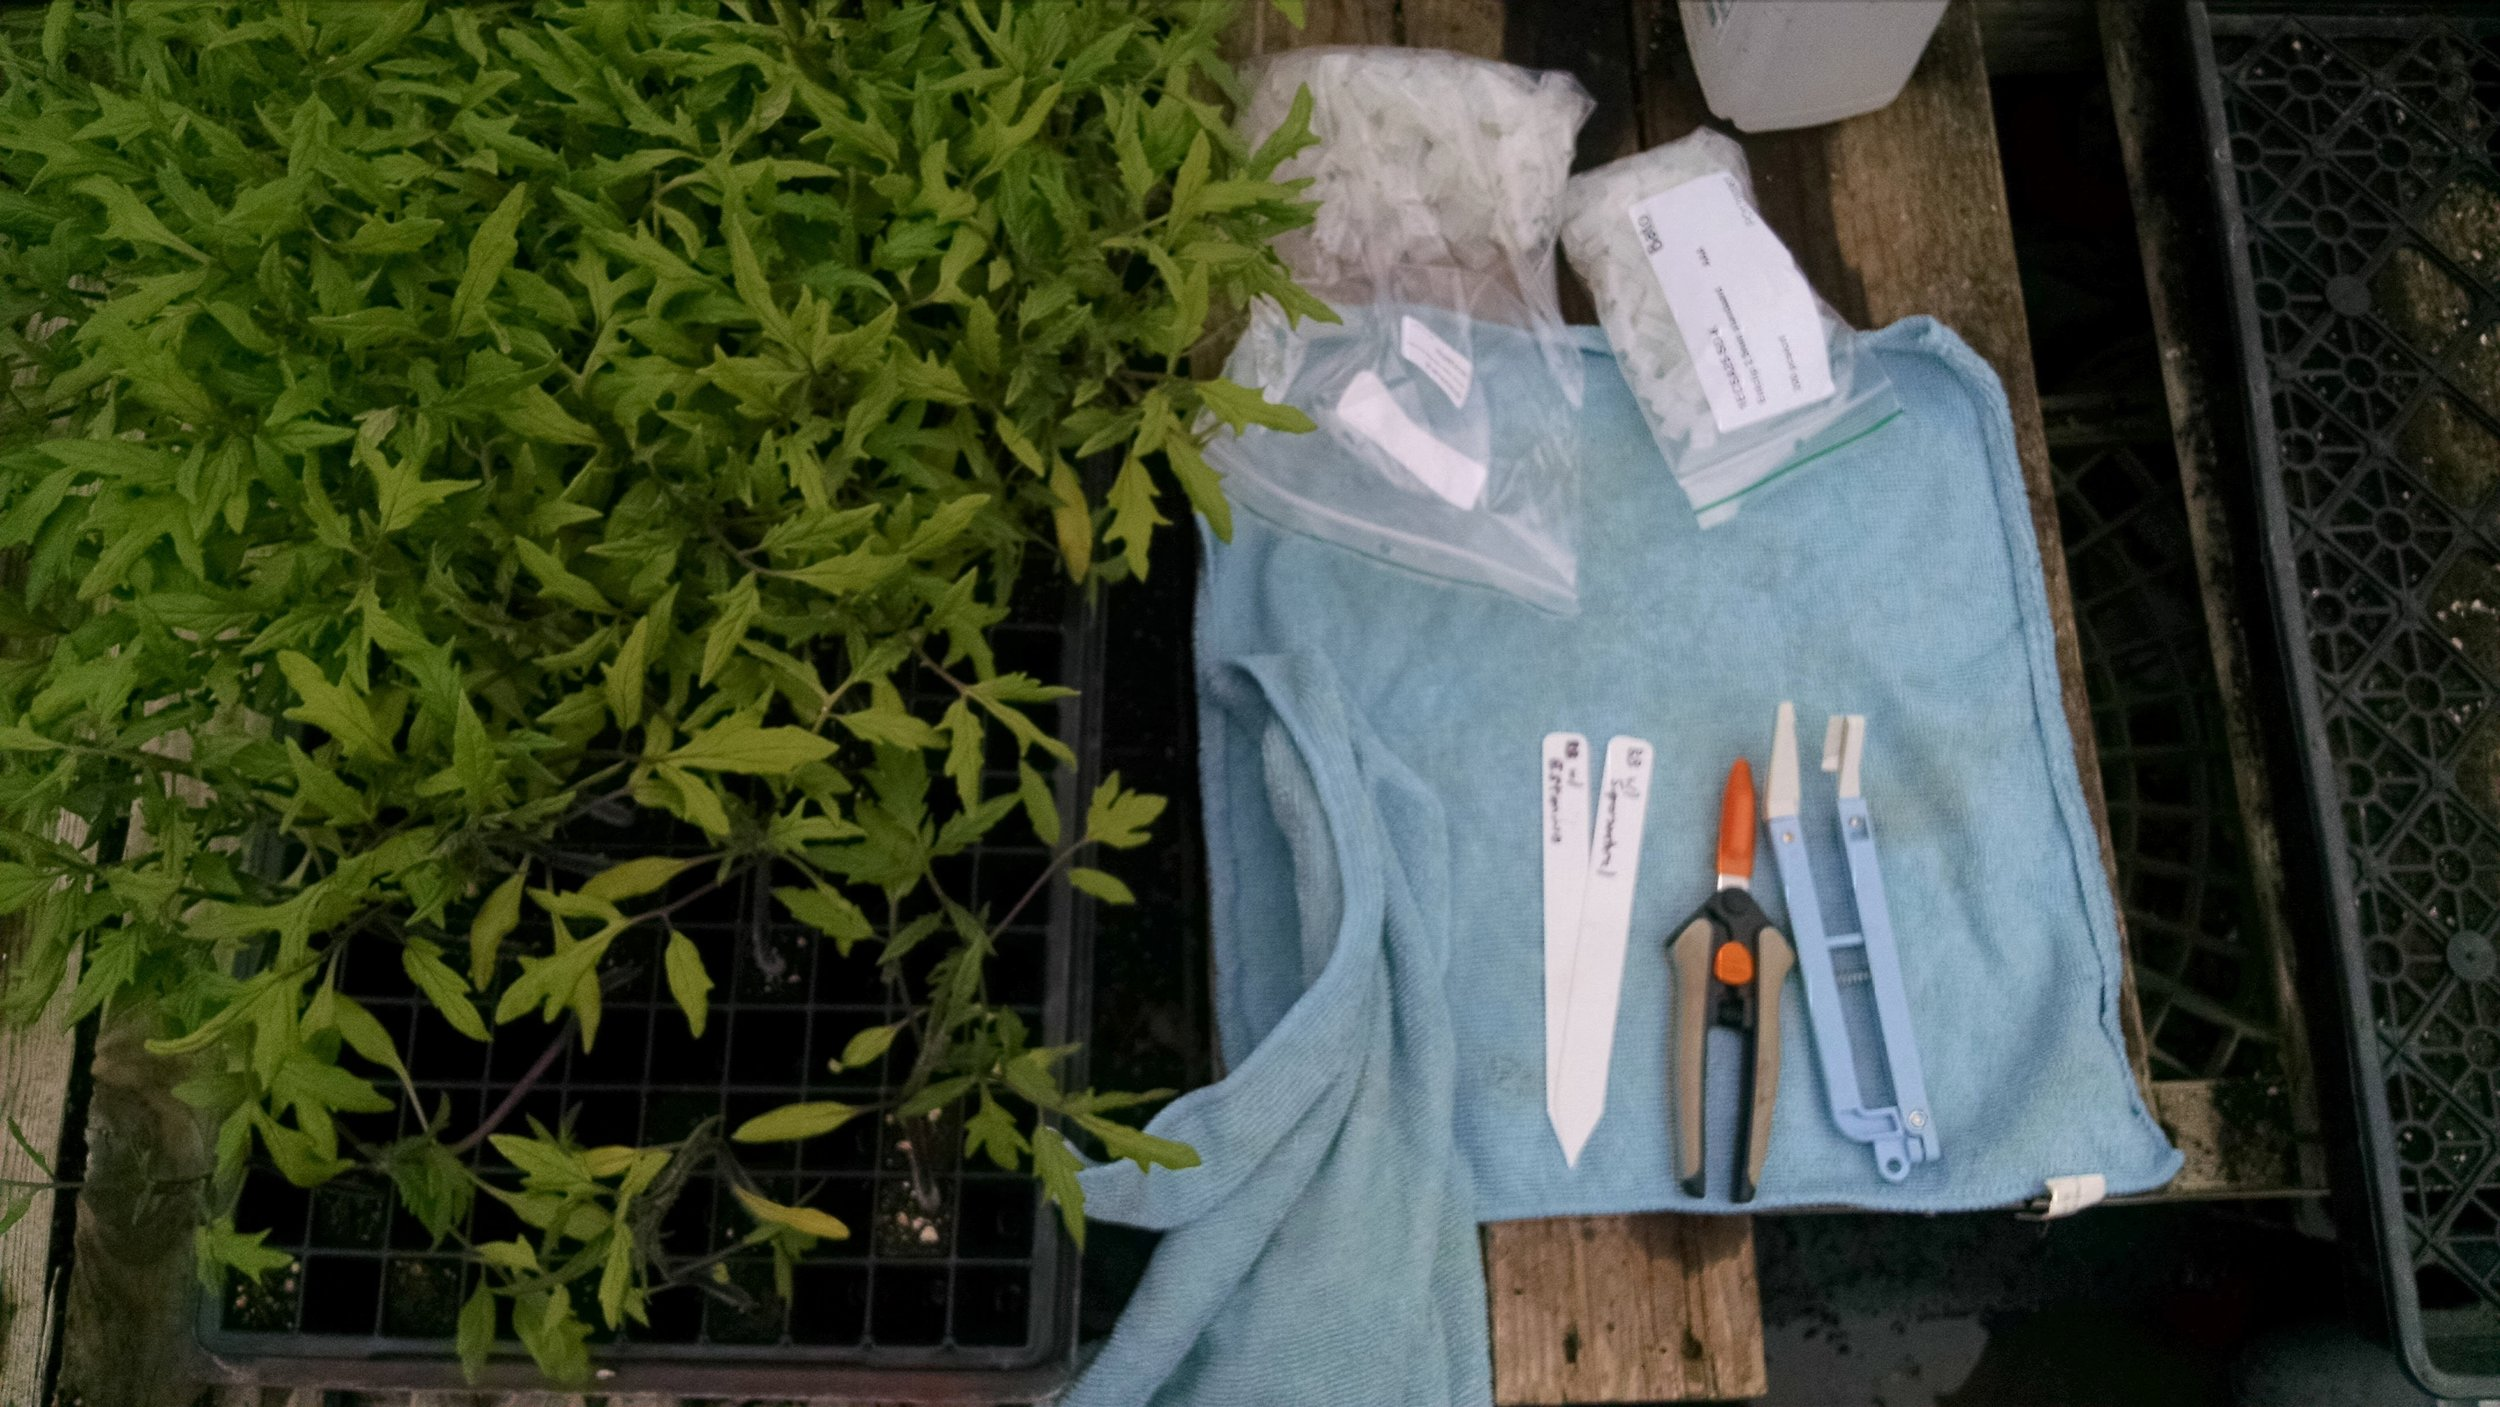 Ready to being: scions, knives, clips, labels, and the most sterile surface we can get